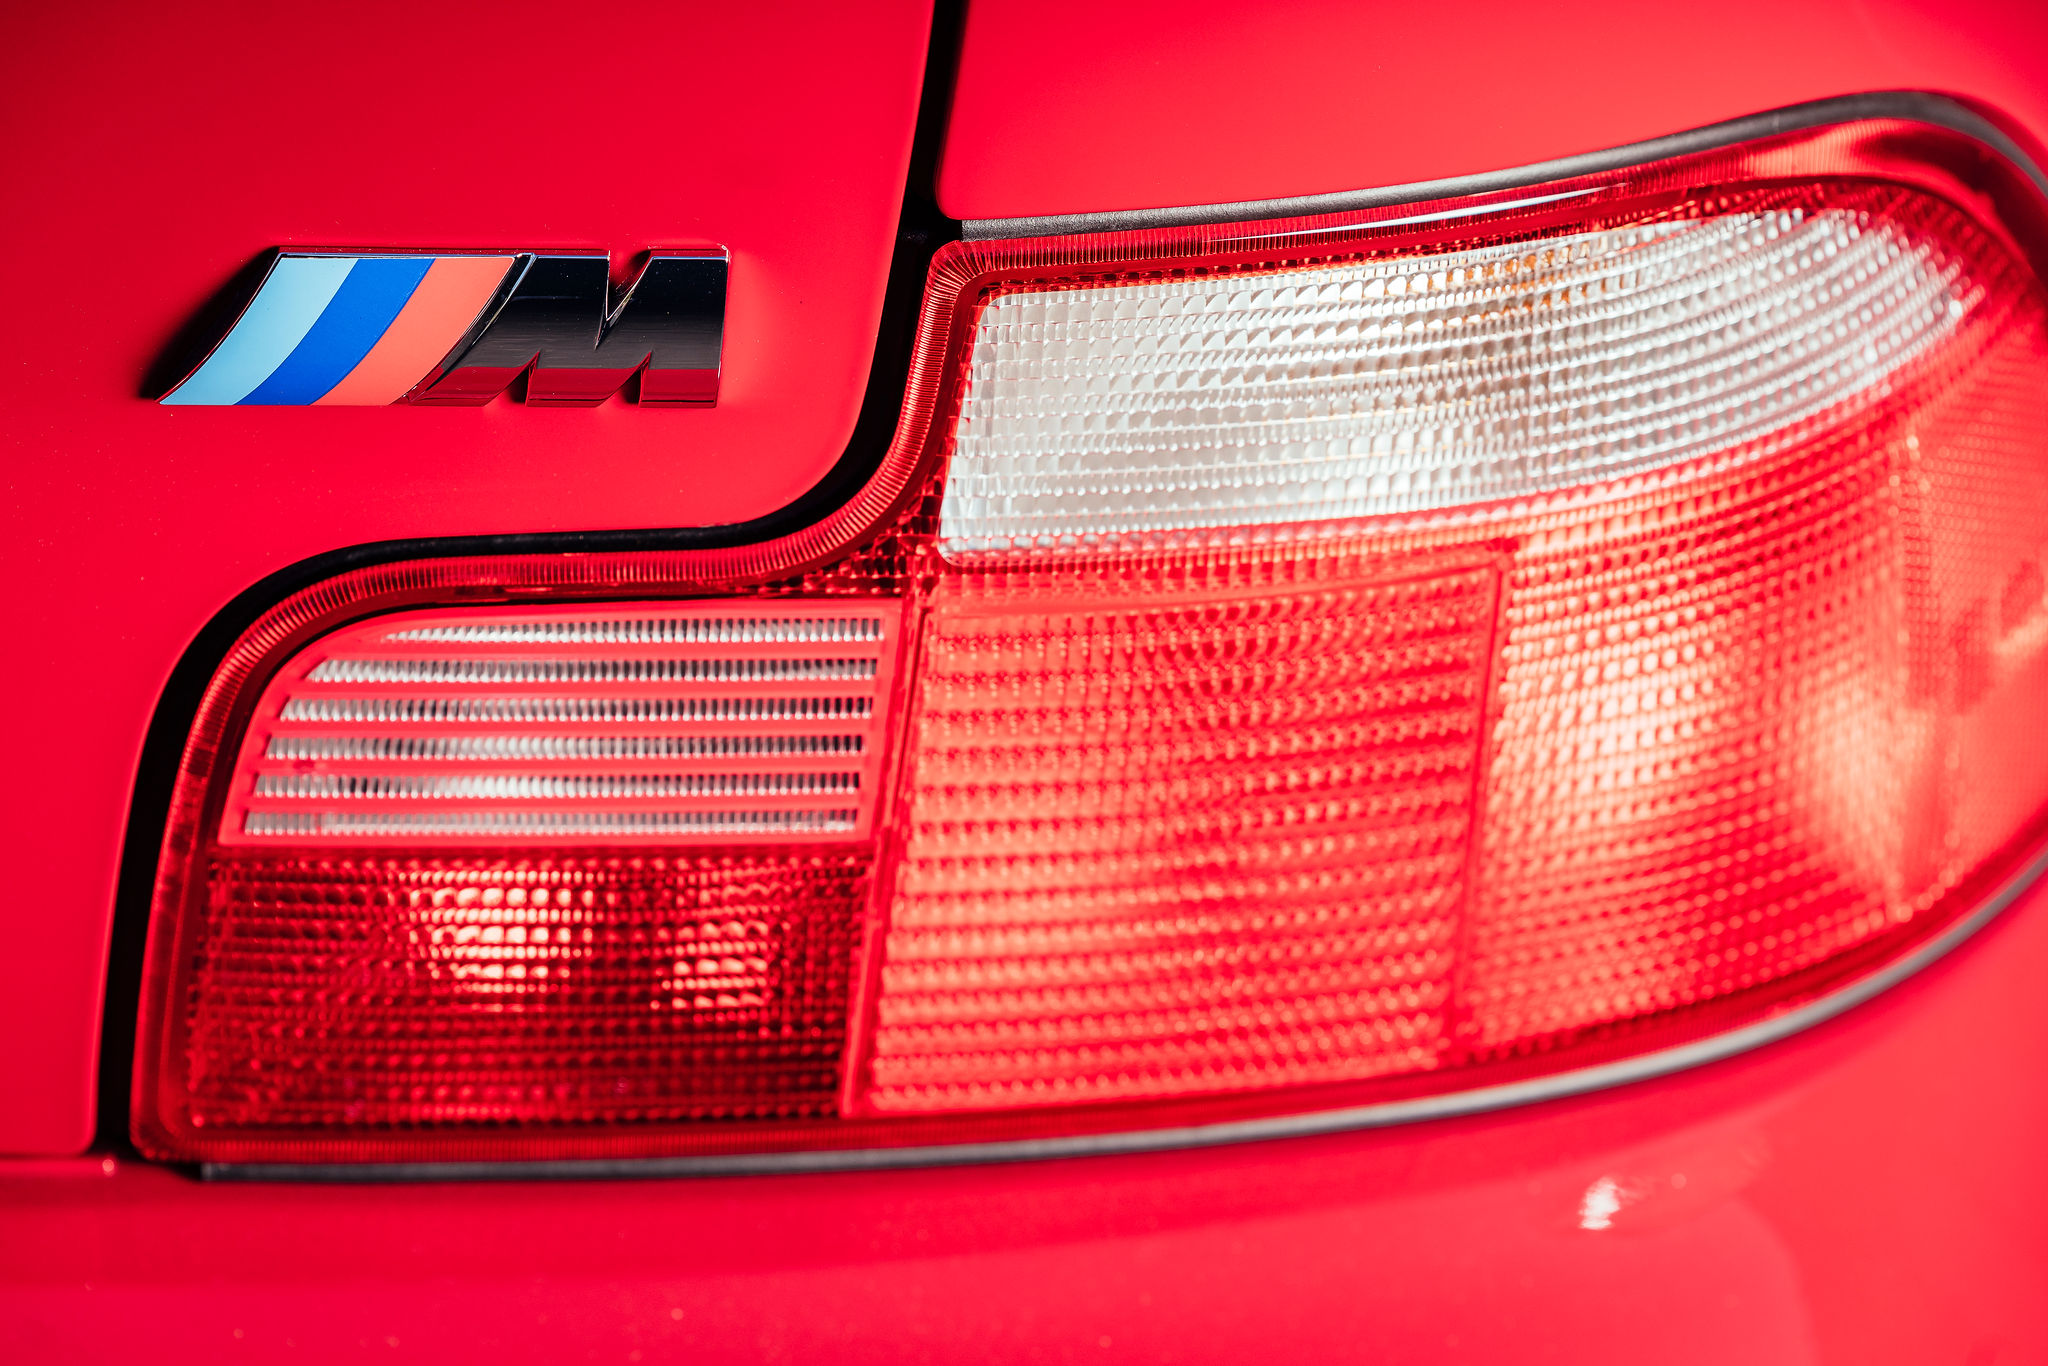 2002 BMW Z3 M Coupe rear taillight m badge